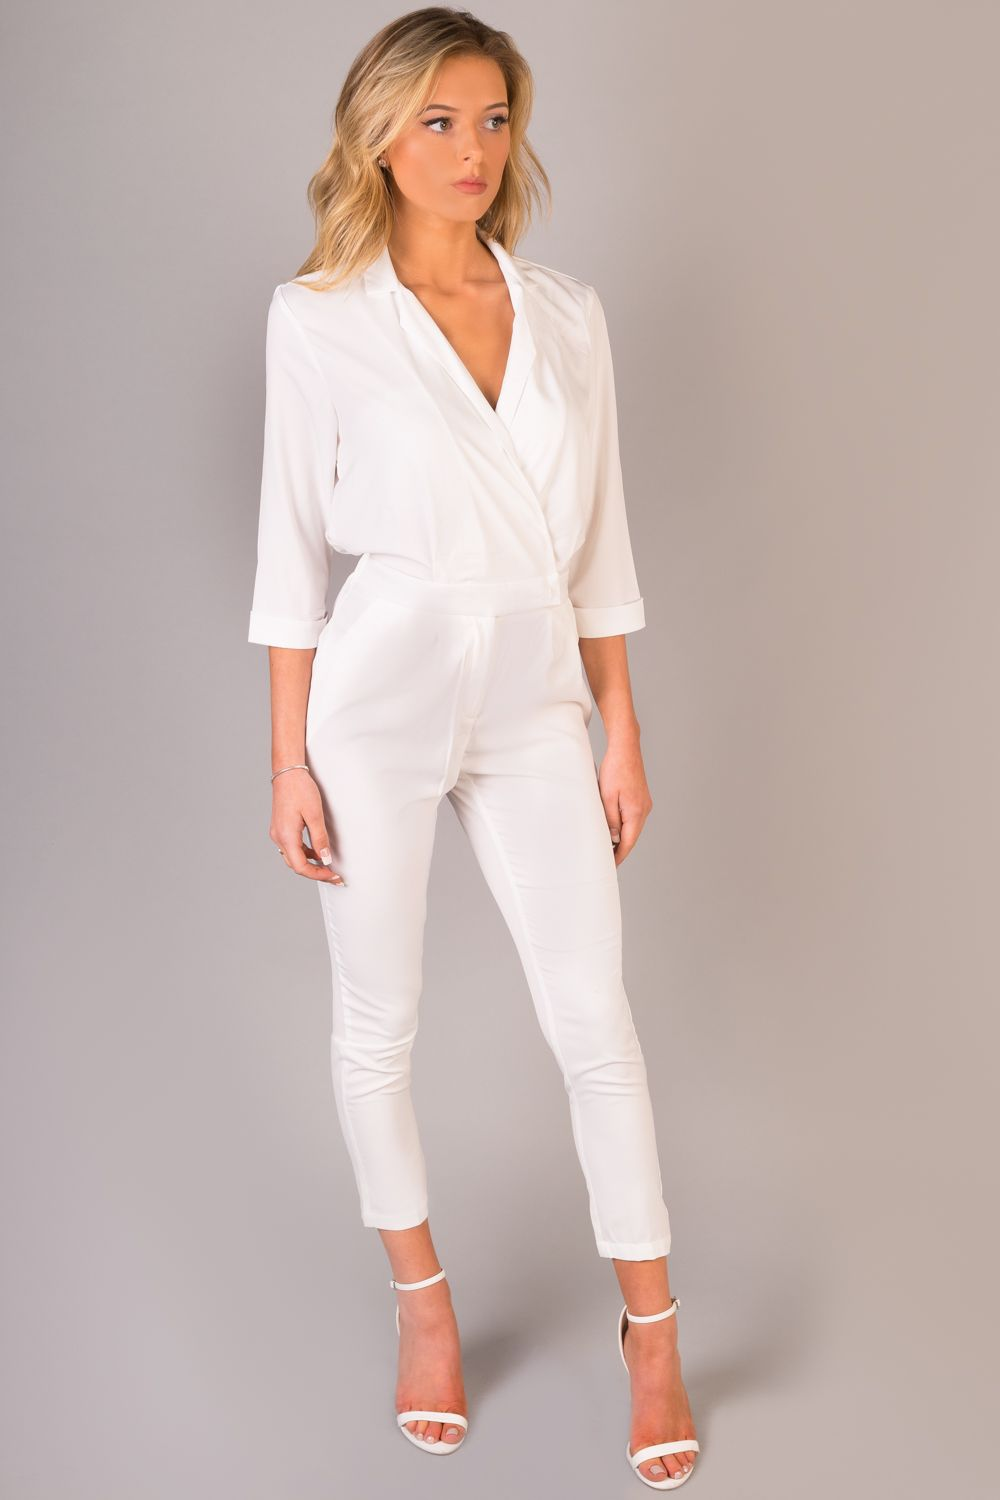 Awesome White Jumpsuit | tenuestyle